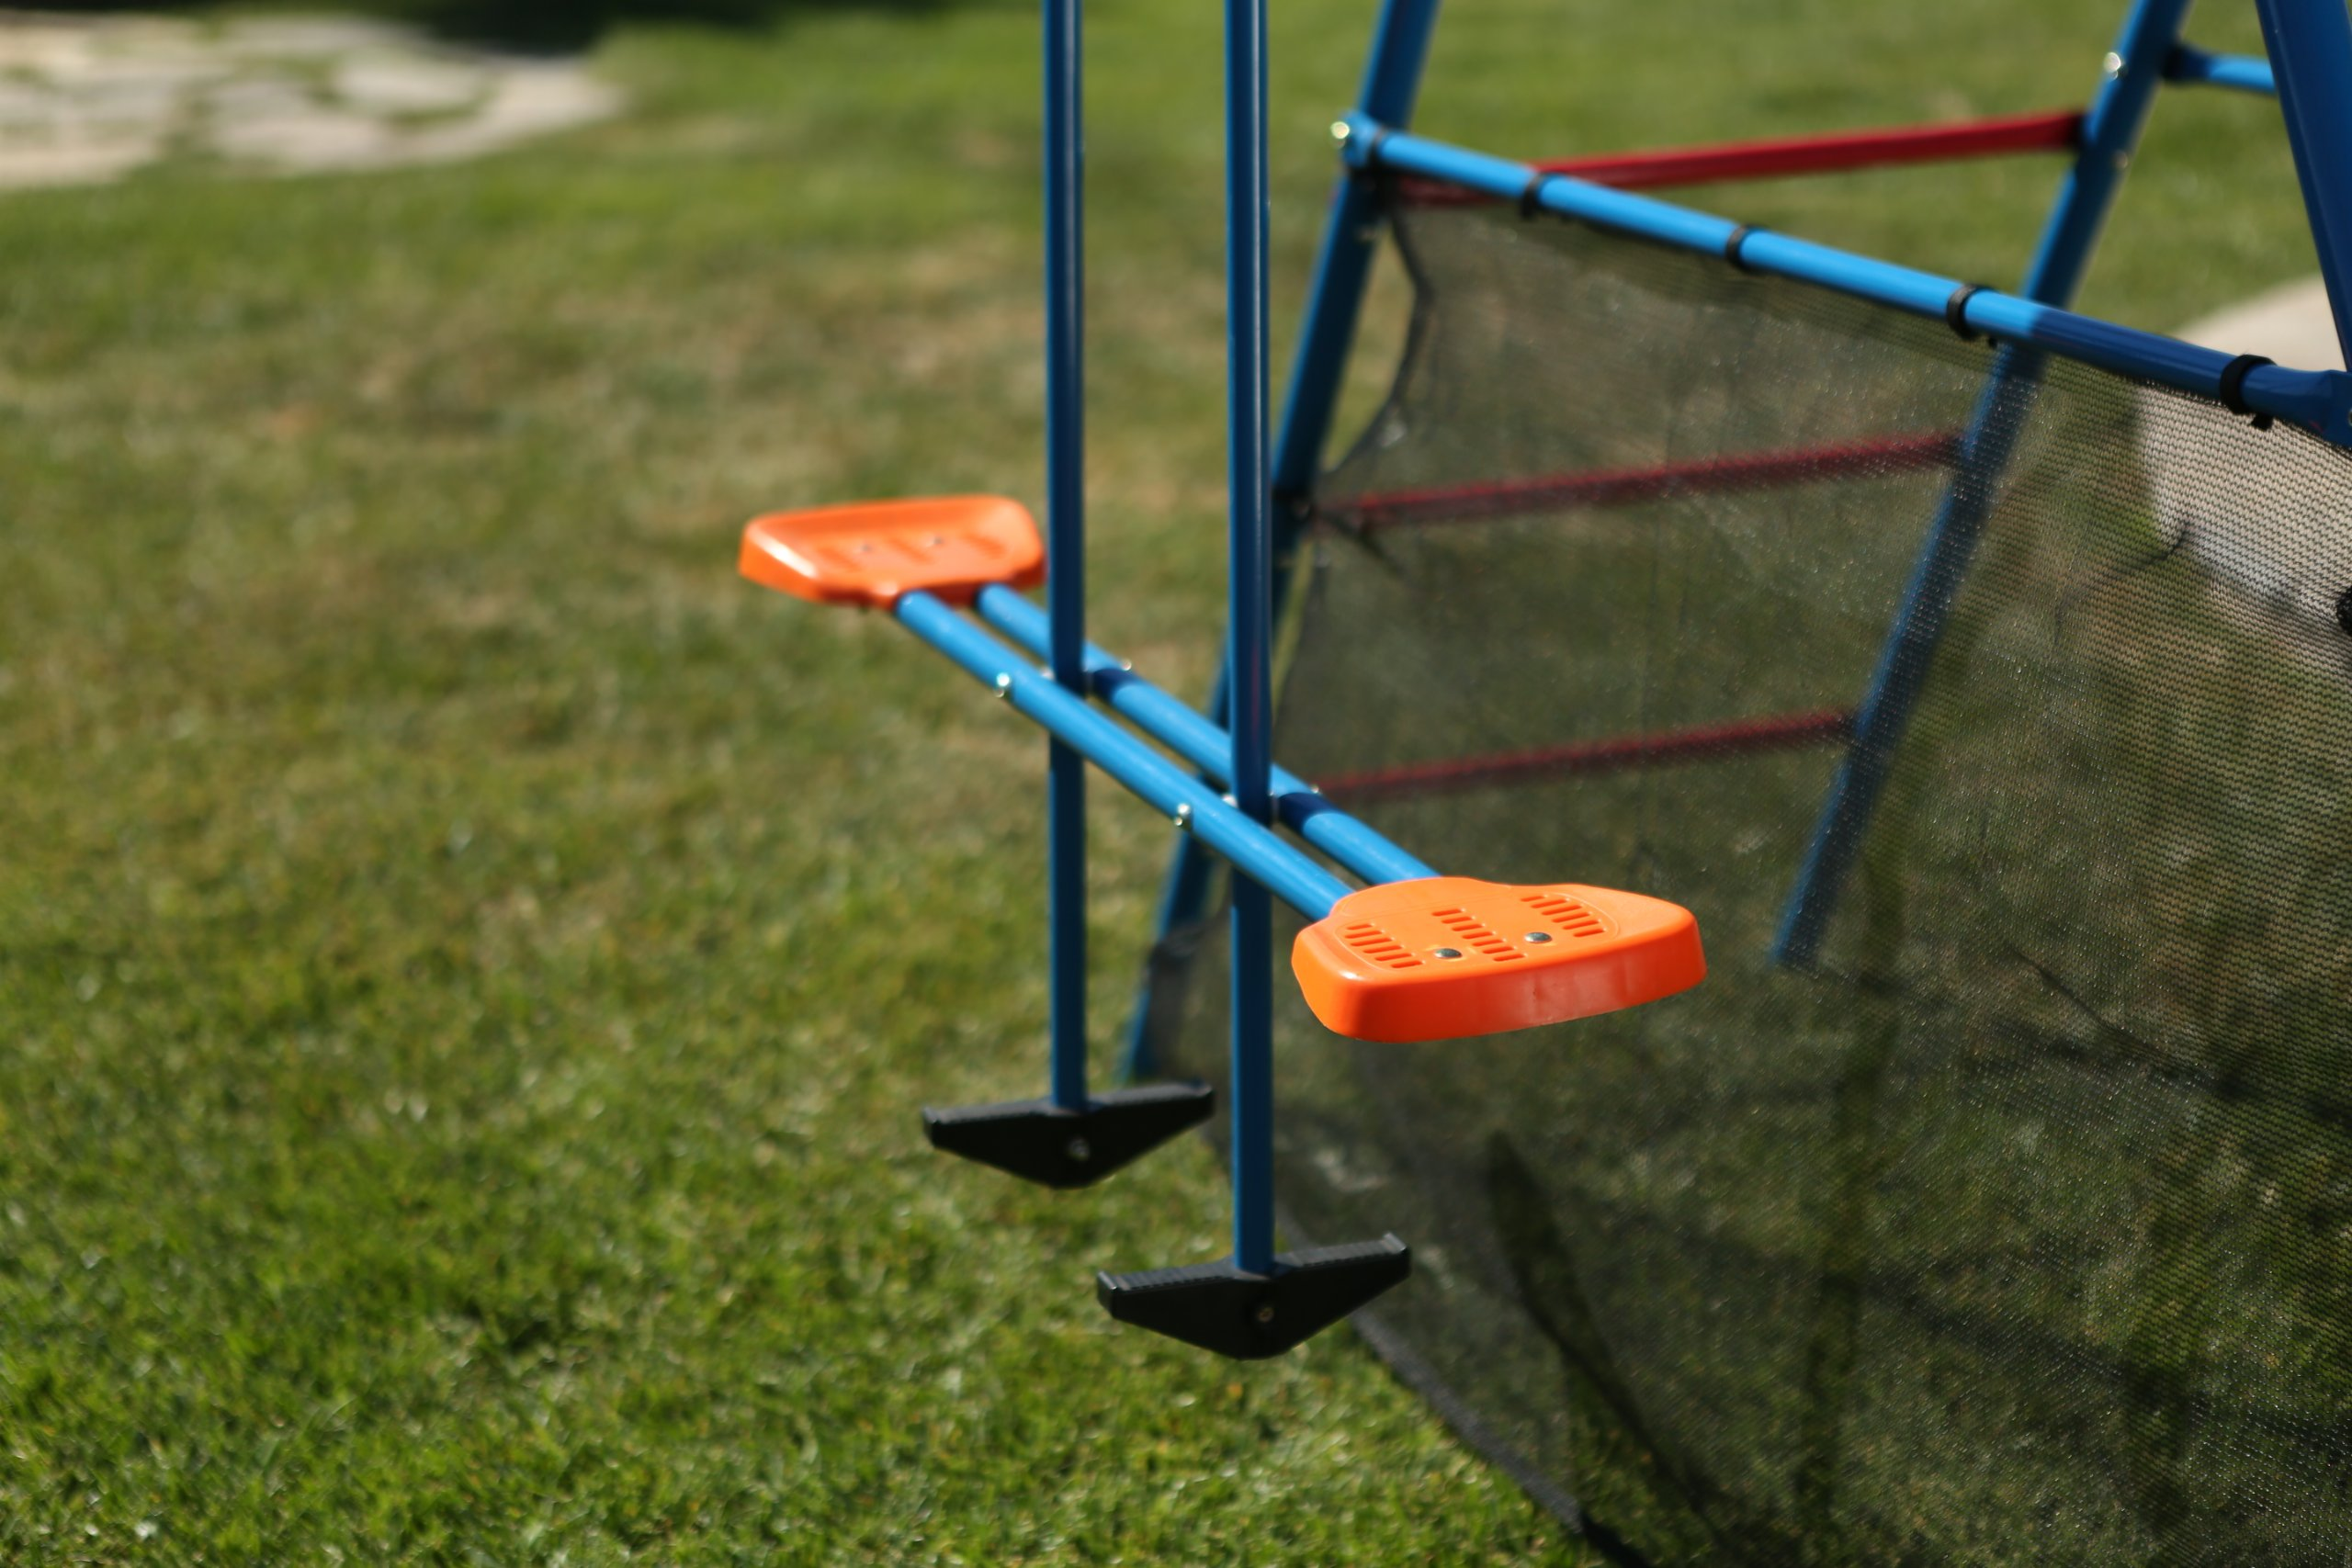 Ironkids Challenge 100 Metal Swing Set with Ladder Climber and UV Protective Sunshade by IRONKIDS (Image #7)